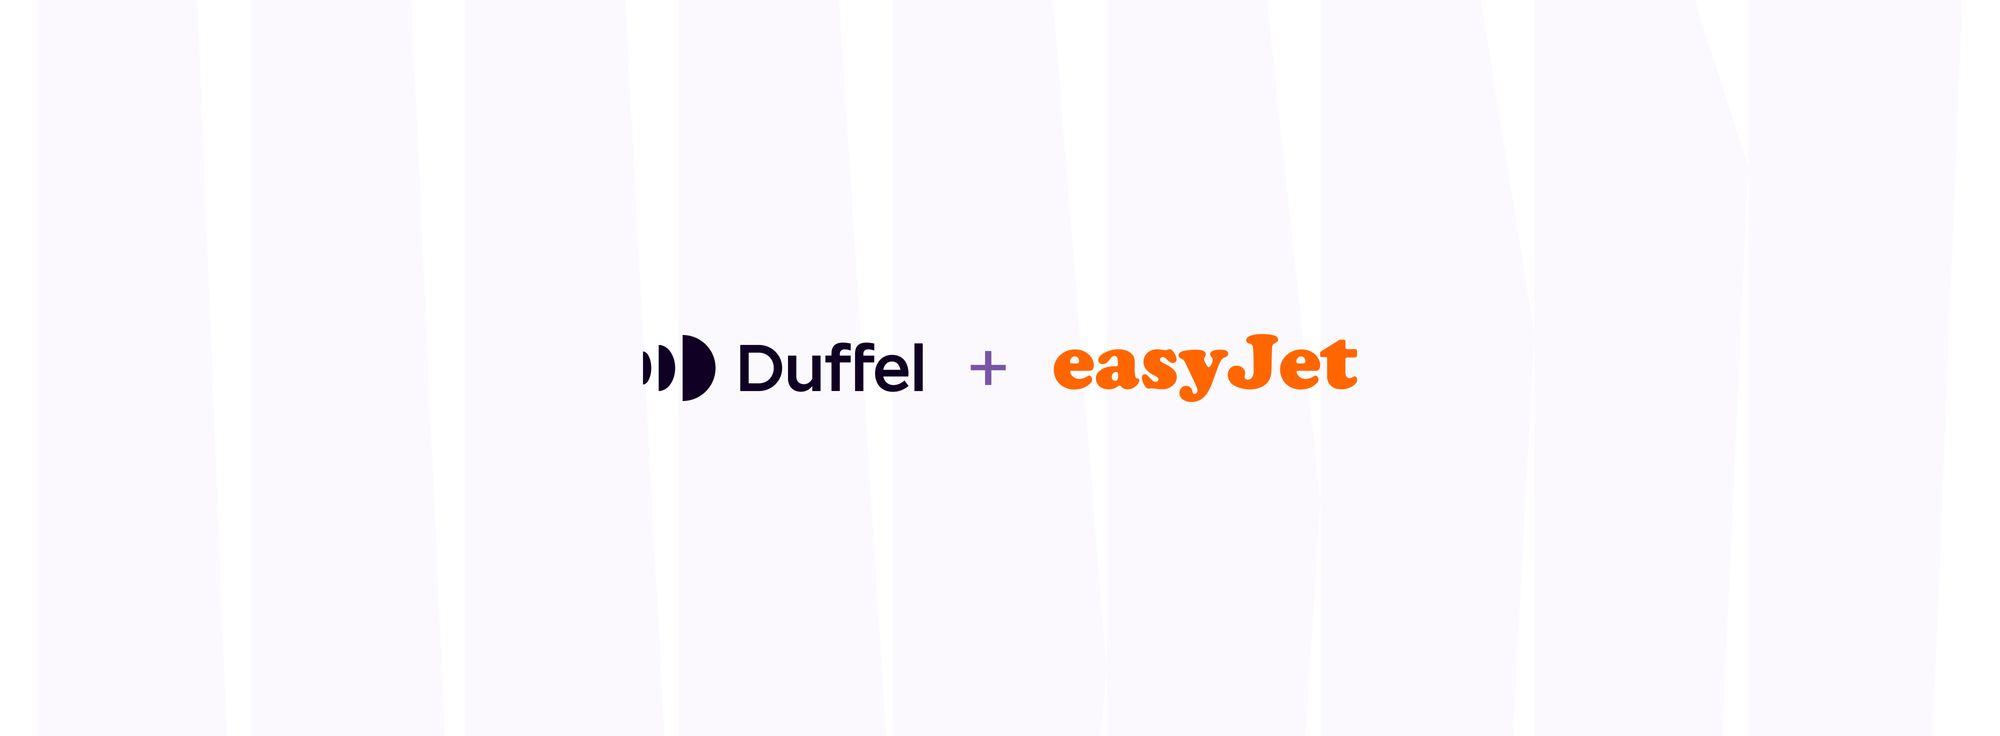 easyJet, Europe's leading airline, is live on Duffel